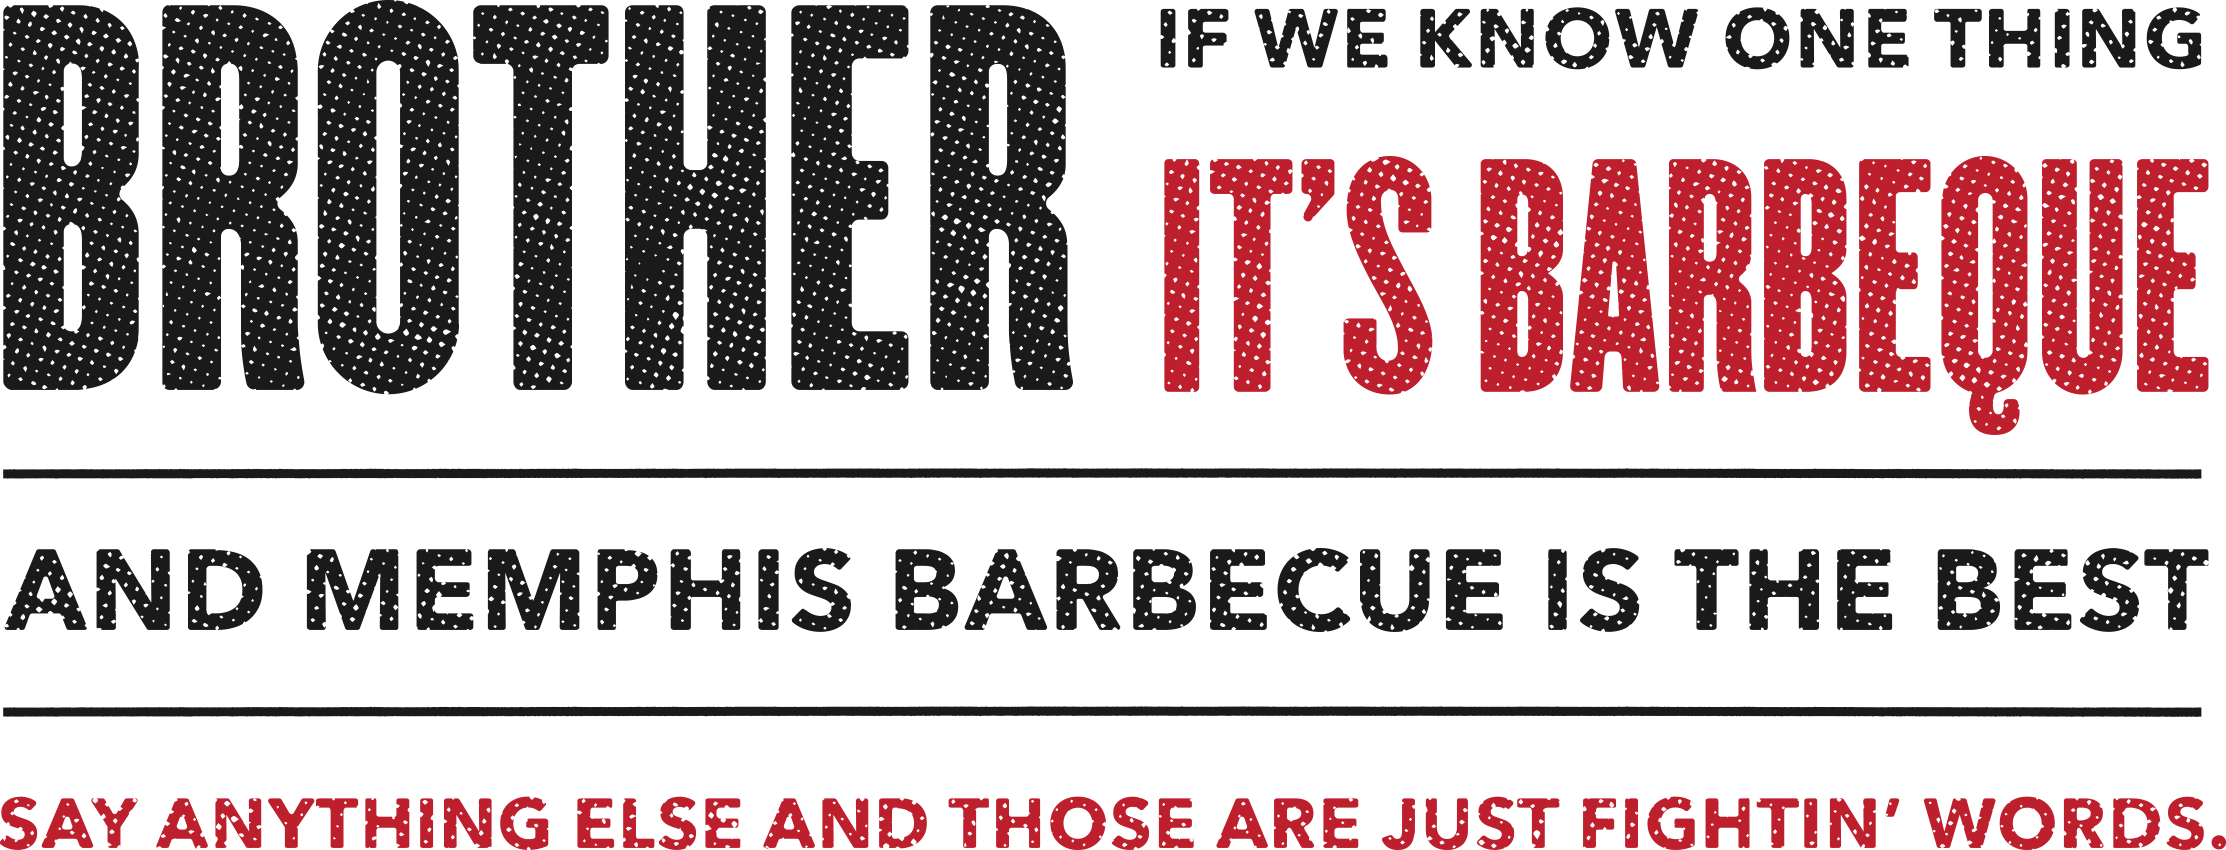 Brother, if we know one thing it's barbecue. And Memphis barbecue is the best. Say anything else and those are just fightin' words.